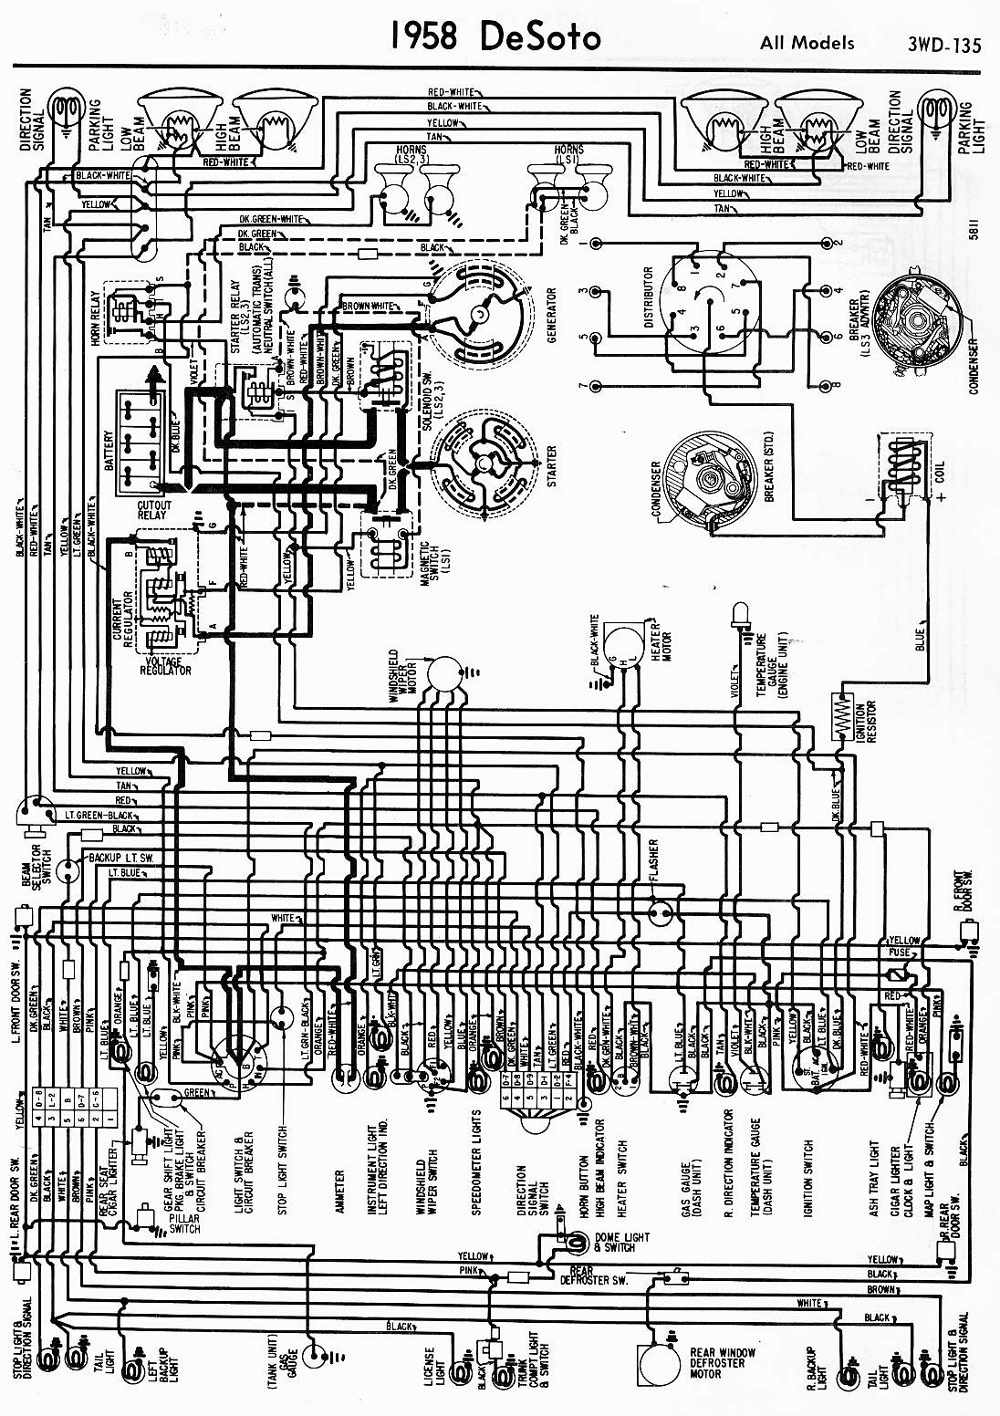 wiring diagrams of 1958 desoto all models?t=1508403756 de soto car manuals, wiring diagrams pdf & fault codes 1941 desoto wiring diagram at reclaimingppi.co